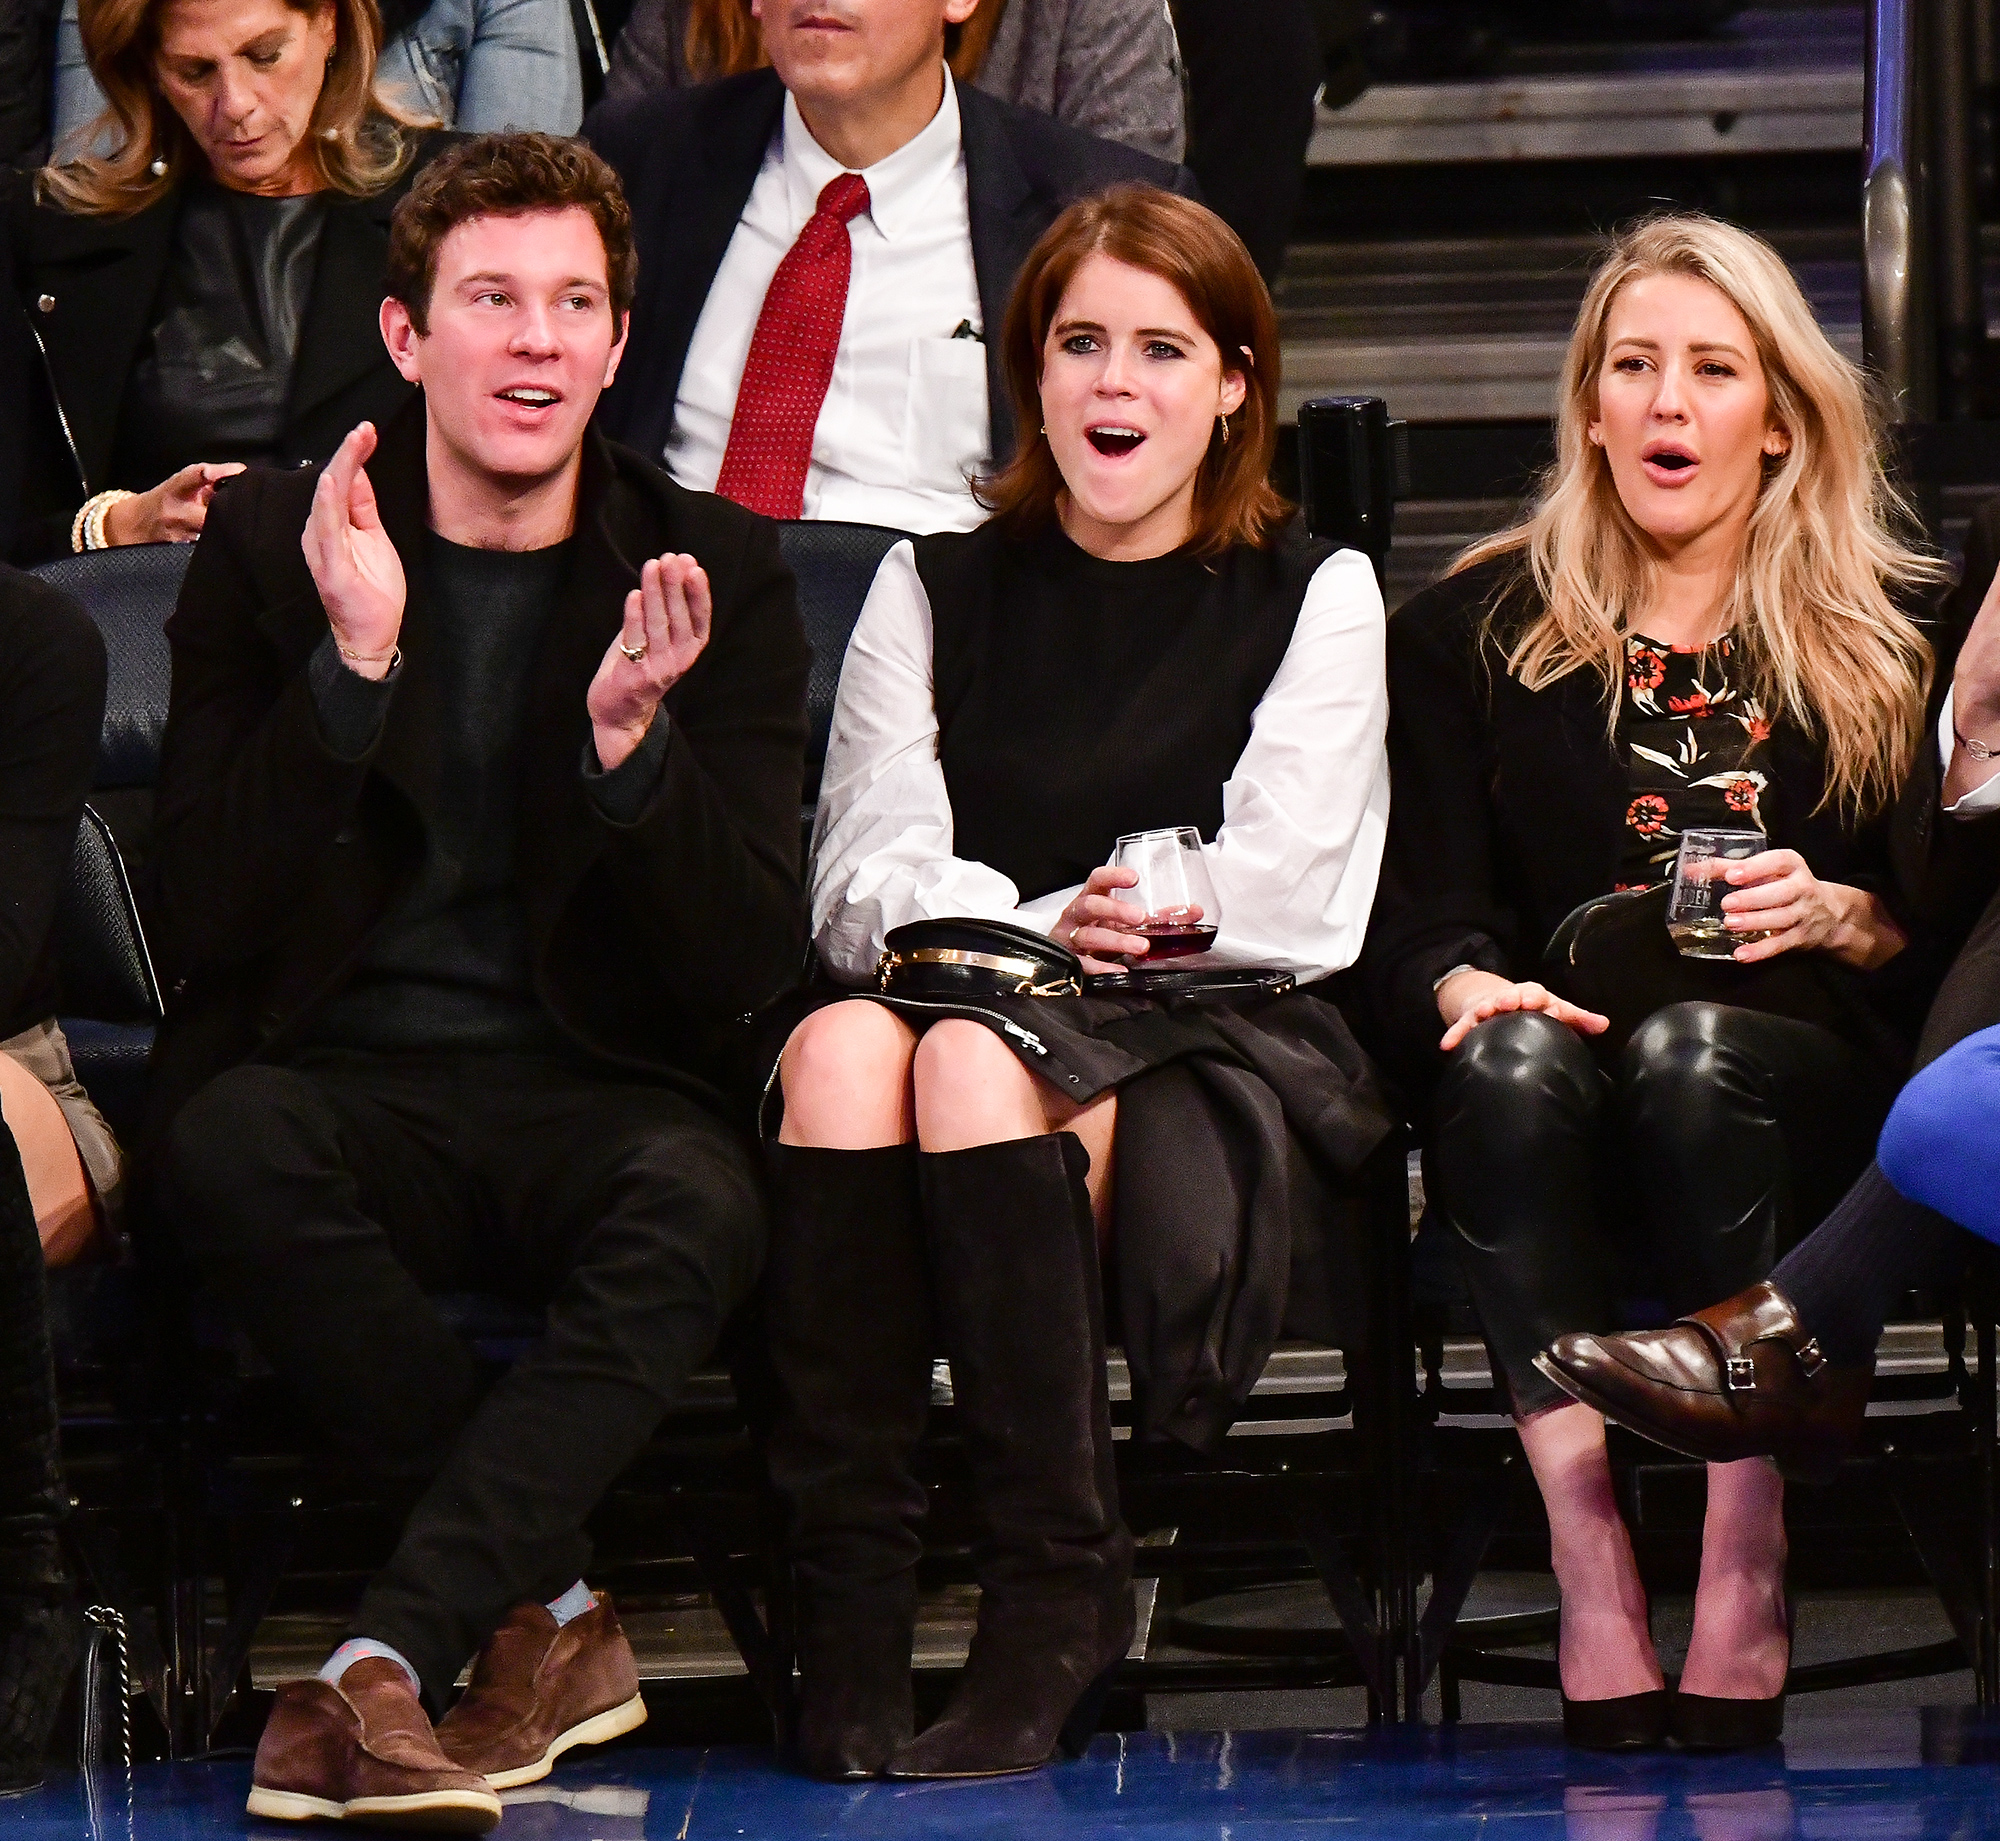 Celebrities Attend The Brooklyn Nets Vs New York Knicks Game - October 27, 2017